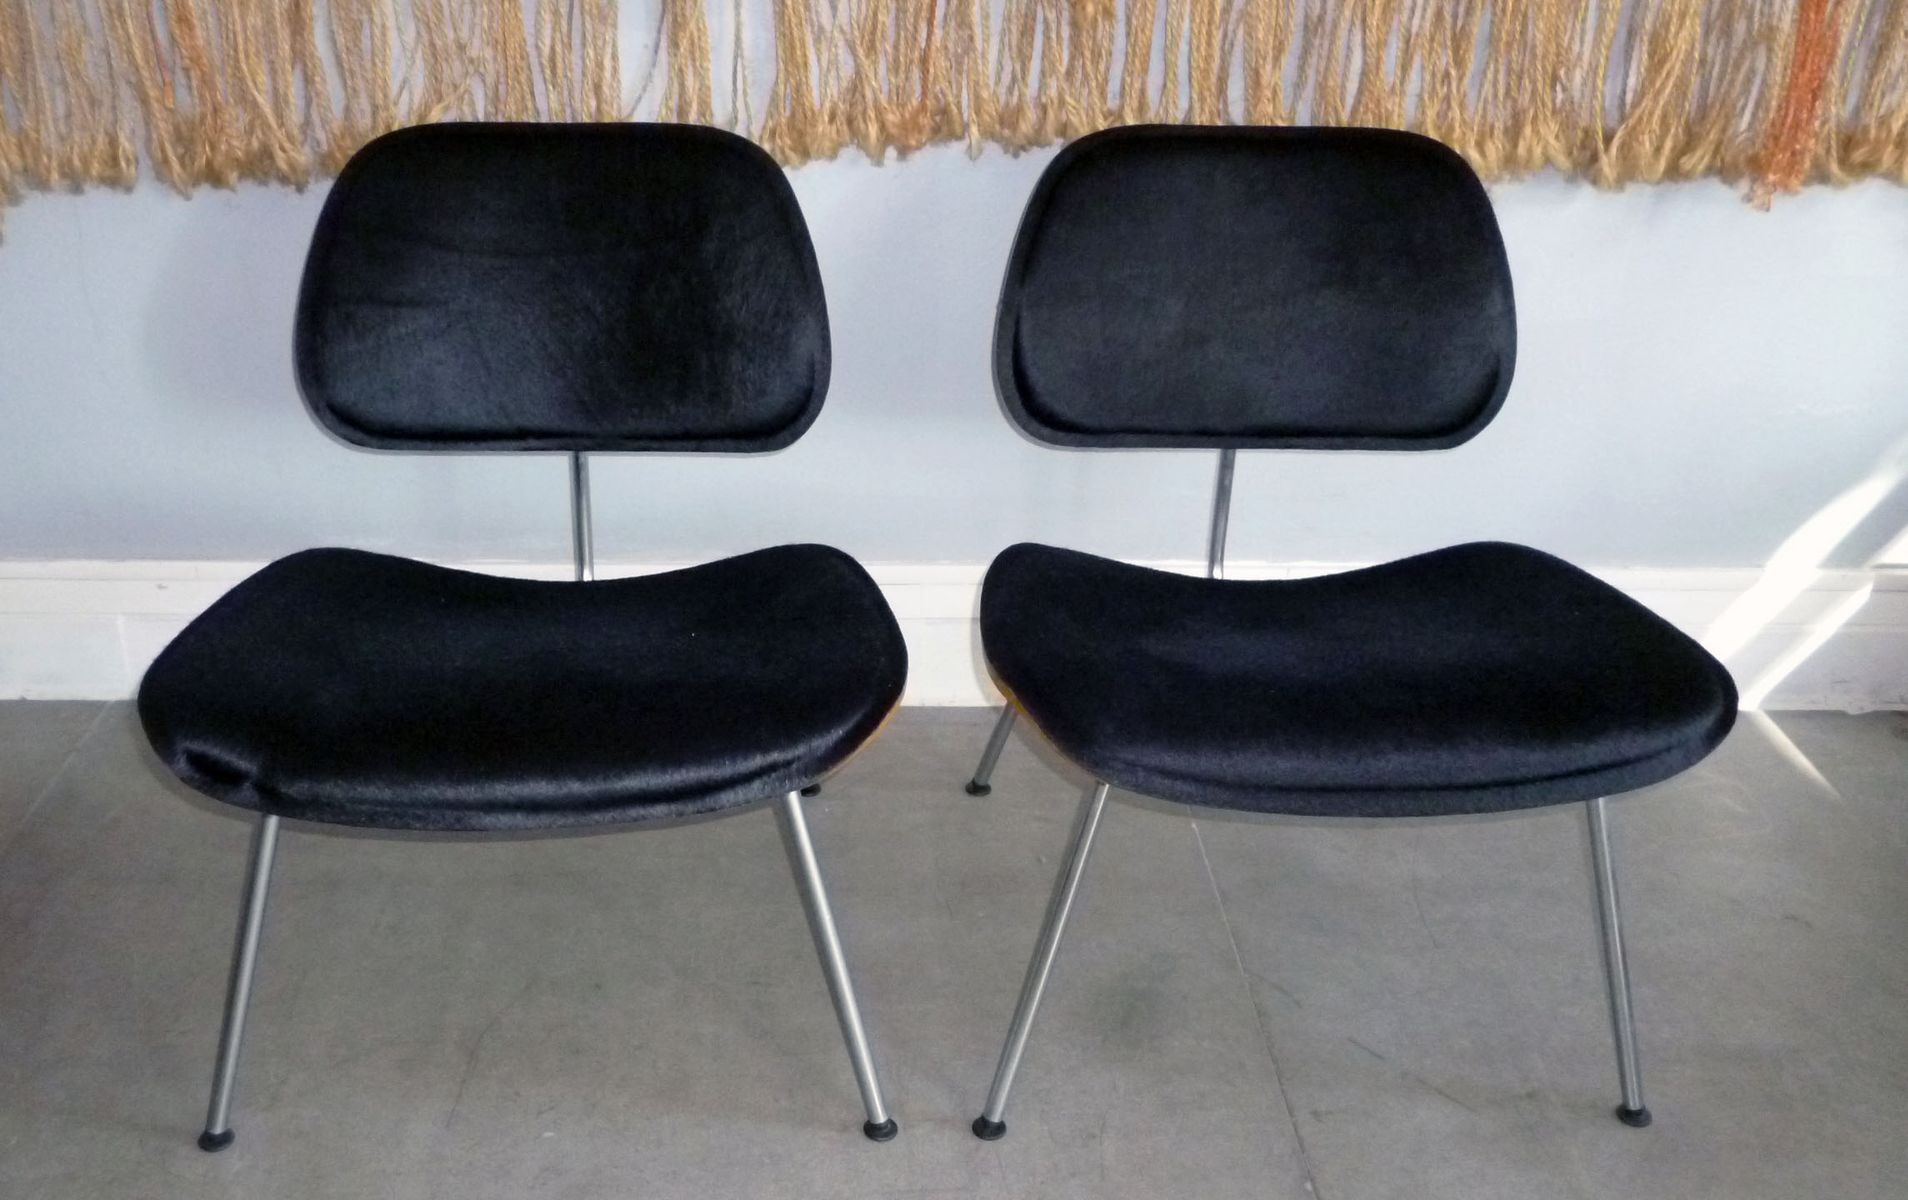 vintage lcm chairs by charles and ray eames for herman miller 1960s